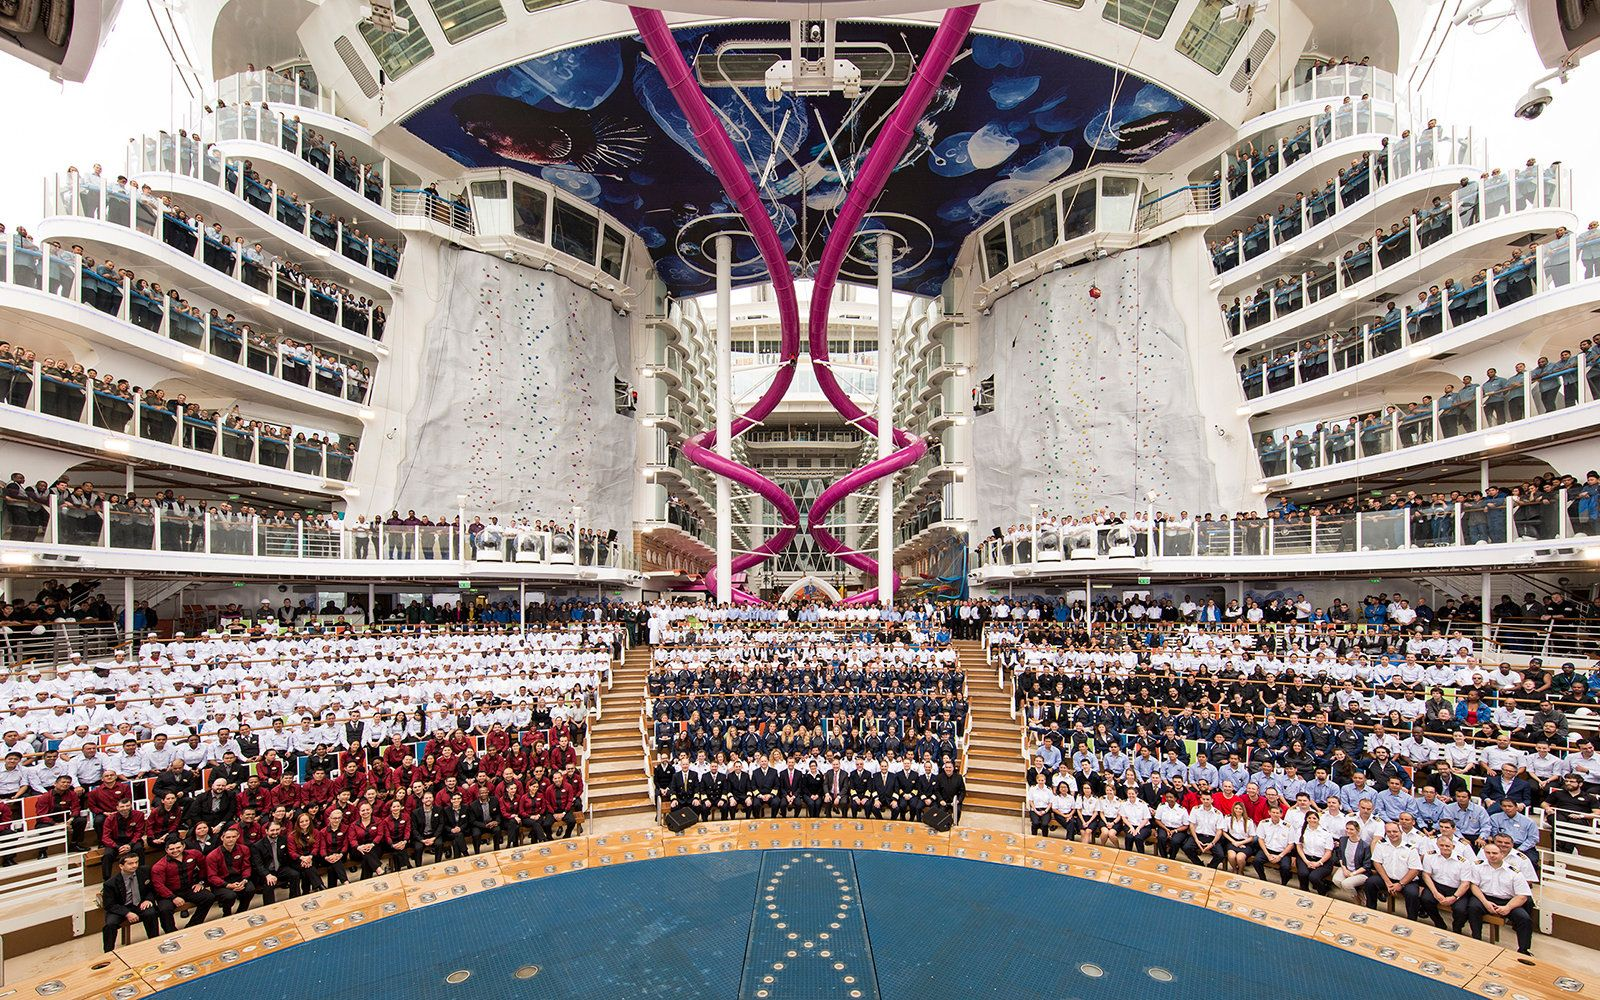 Worlds Biggest Cruise Ship Makes Its Maiden Voyage Cruise Ships - Biggest cruise ships